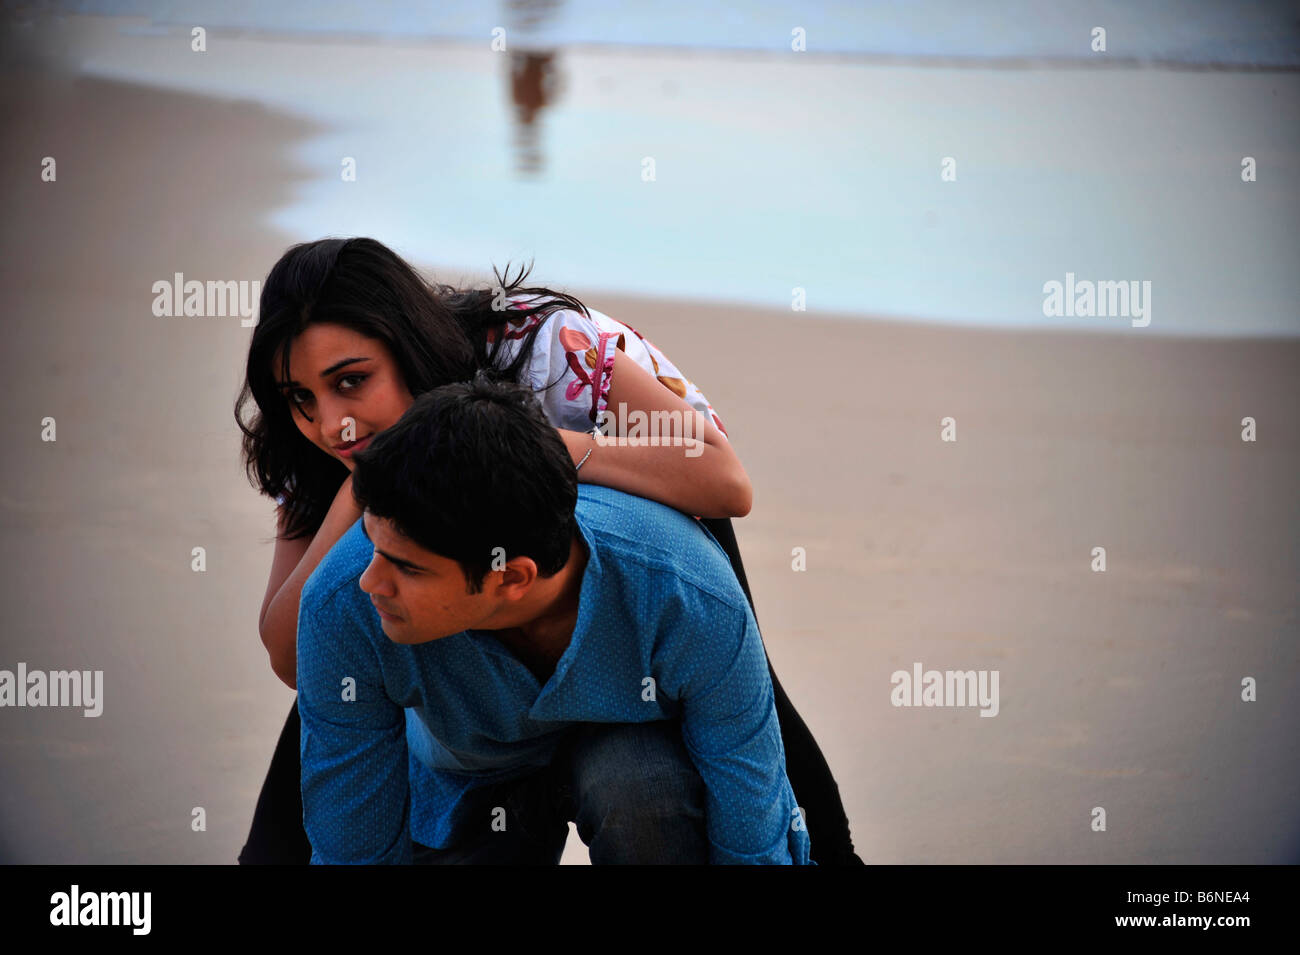 Love Pose Of An Indian Boy And Girl Stock Photo 21370556 Alamy